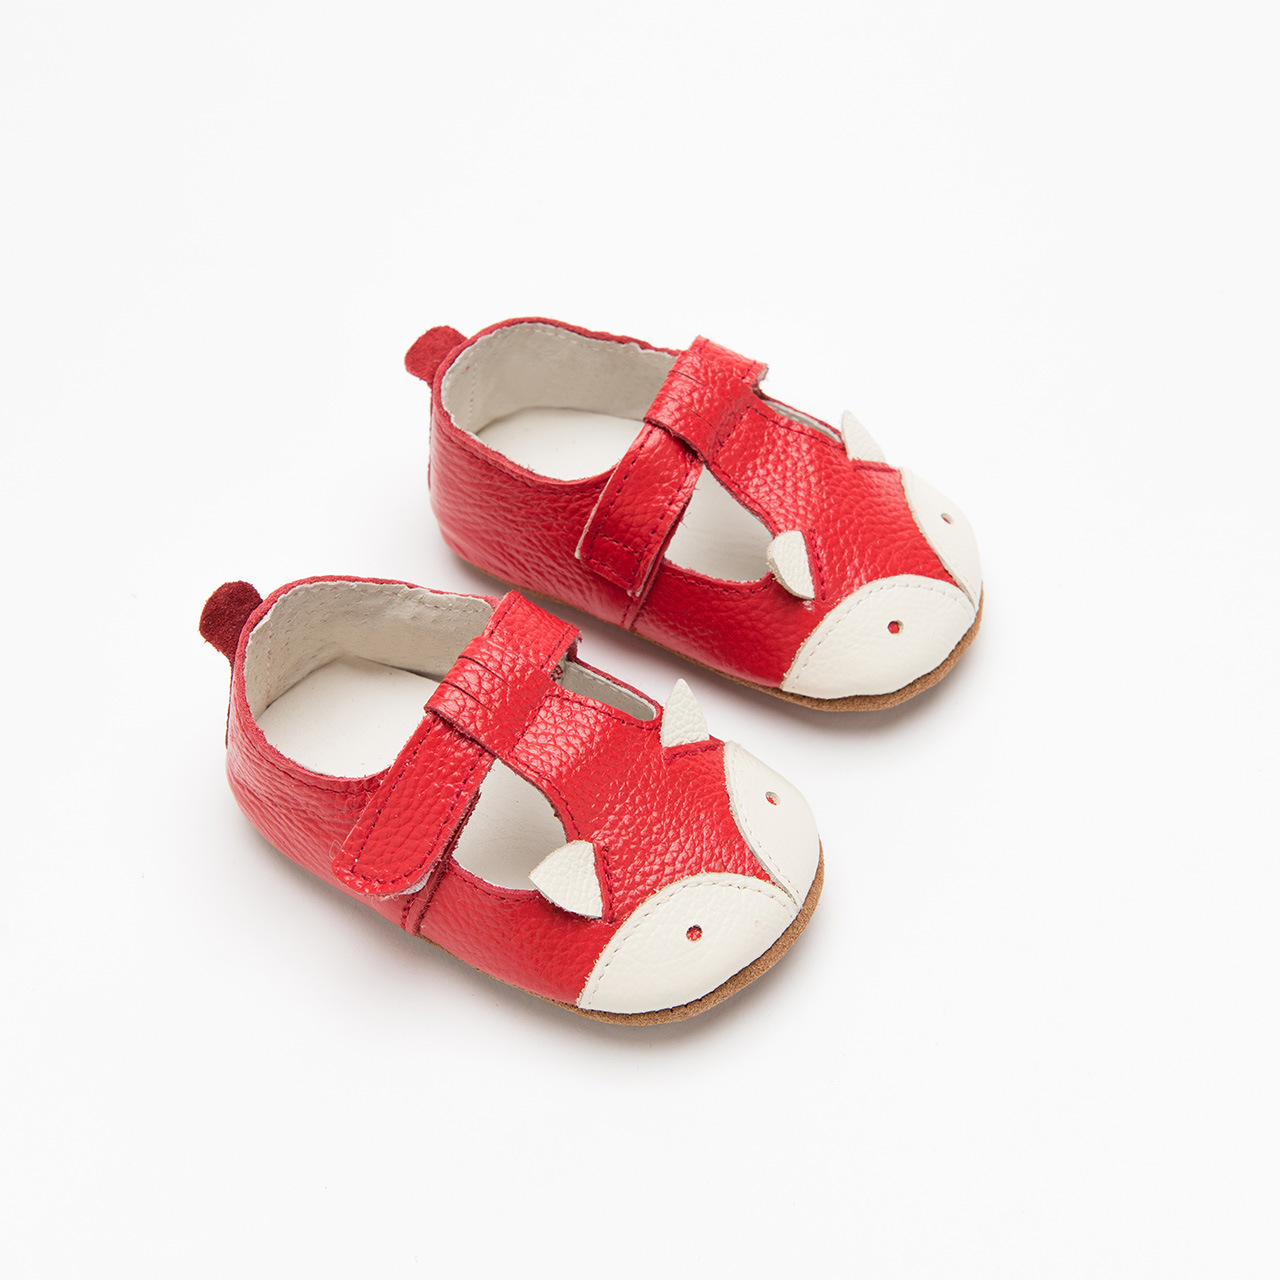 Baby Girls T-Strap Sandals Ankle Wrap Faux Leather Prewalker Rubber Sole Shoes